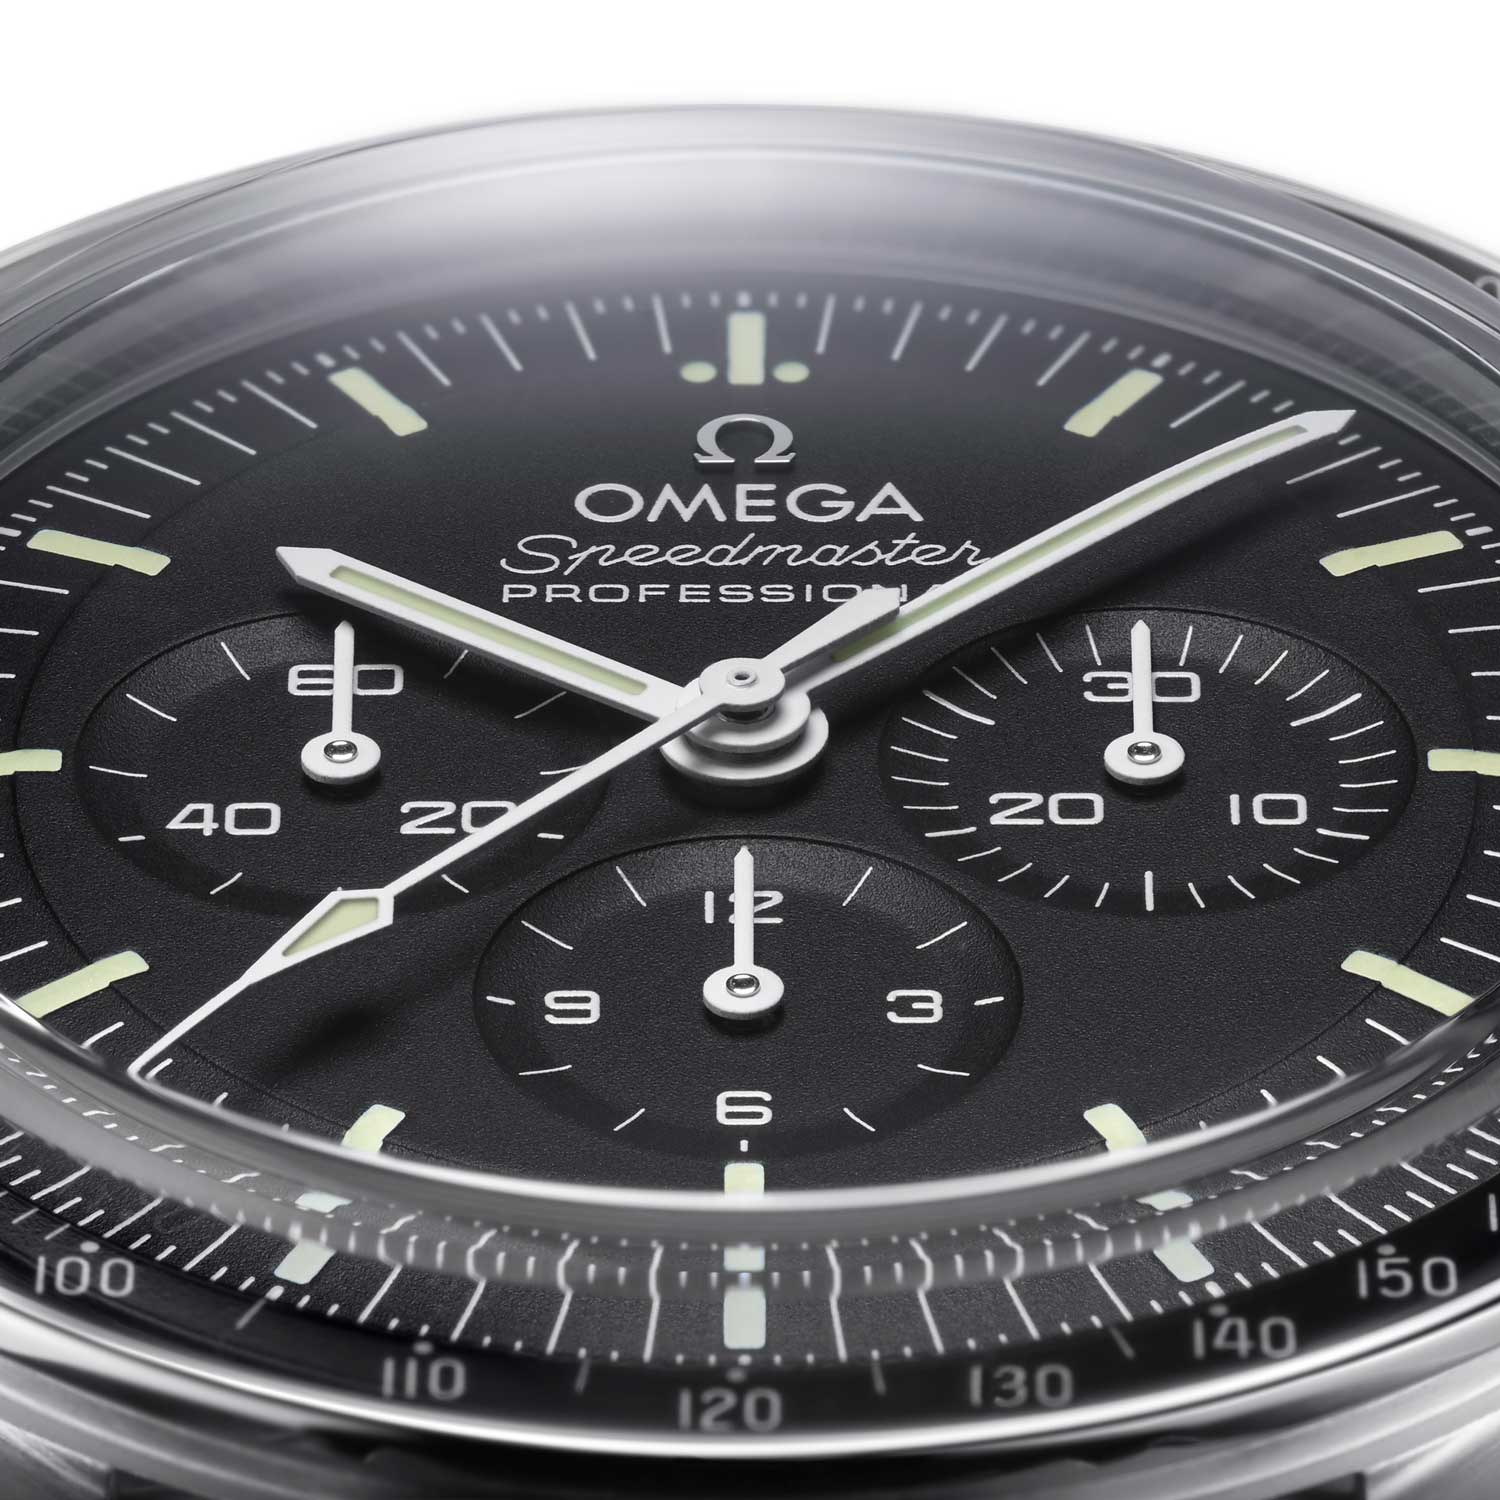 The 2021 Speedmaster dial has been given the stepped configuration and paired with bowed minute and seconds chronograph hands that follow the contour of the stepped dial closely; here you can also see that this begin a sapphire crystal version, has an applied Omega logo